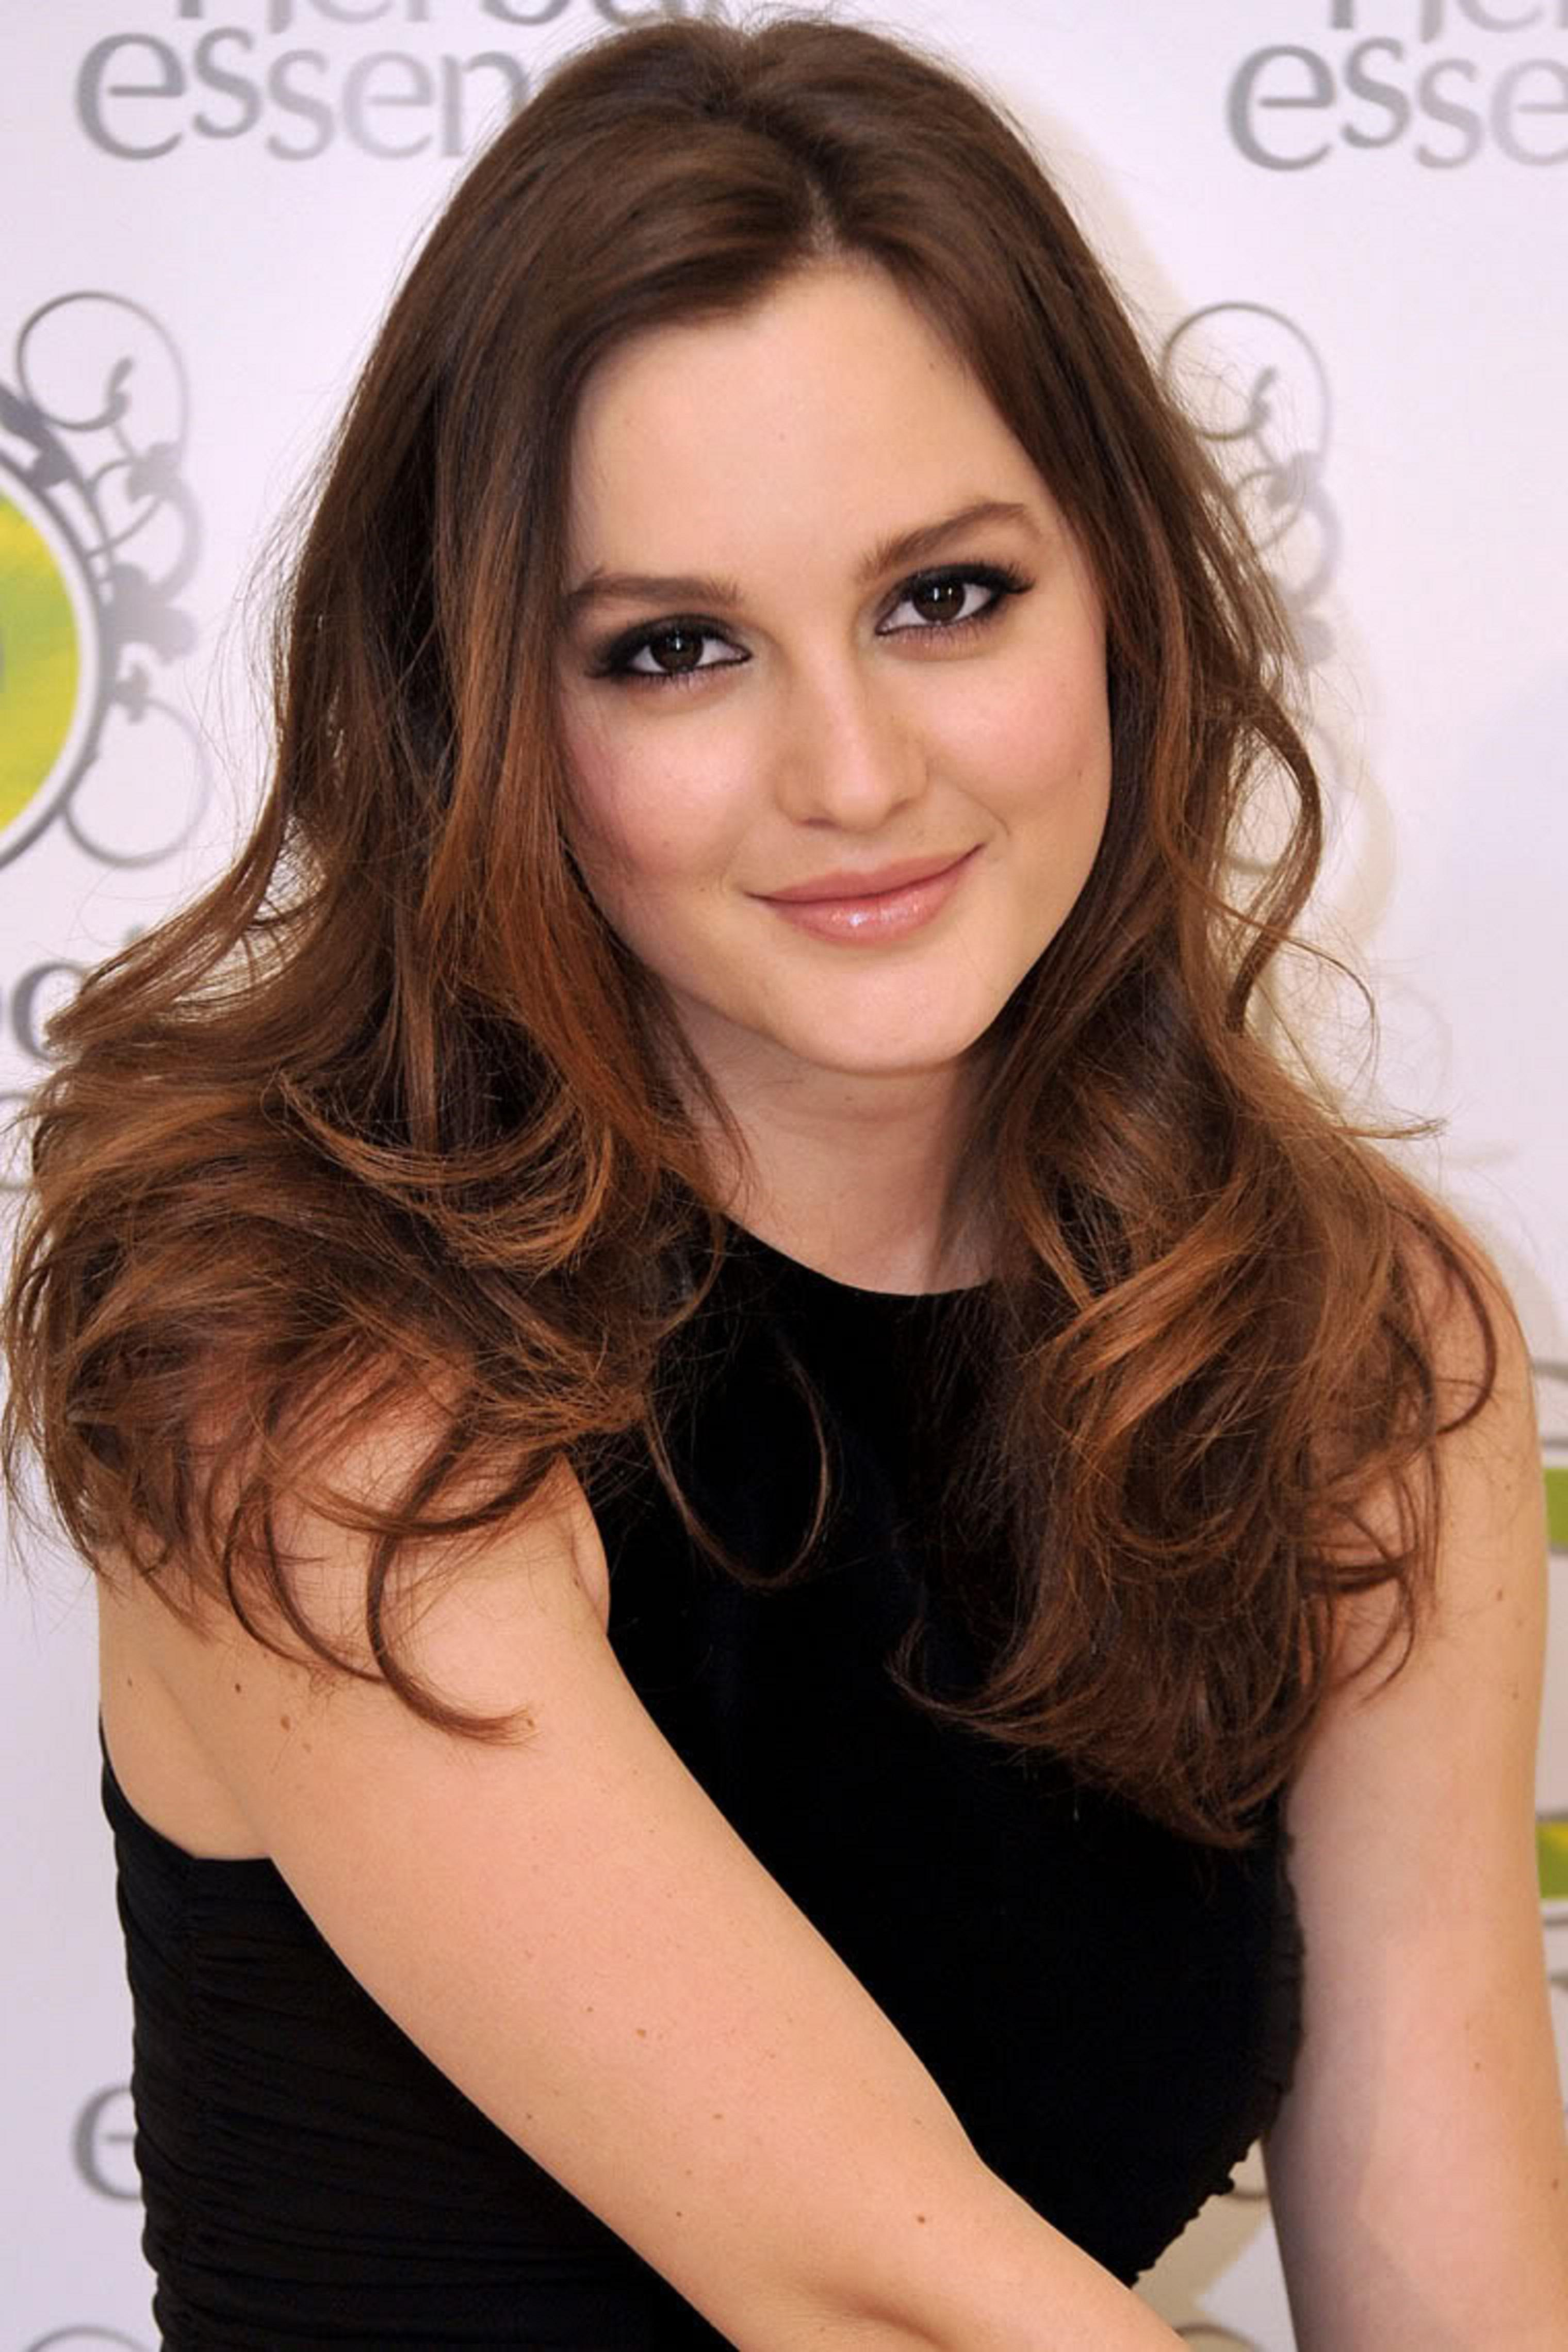 Leighton Meester Has Good Hair - Hairstyles For 60 Year Old Woman